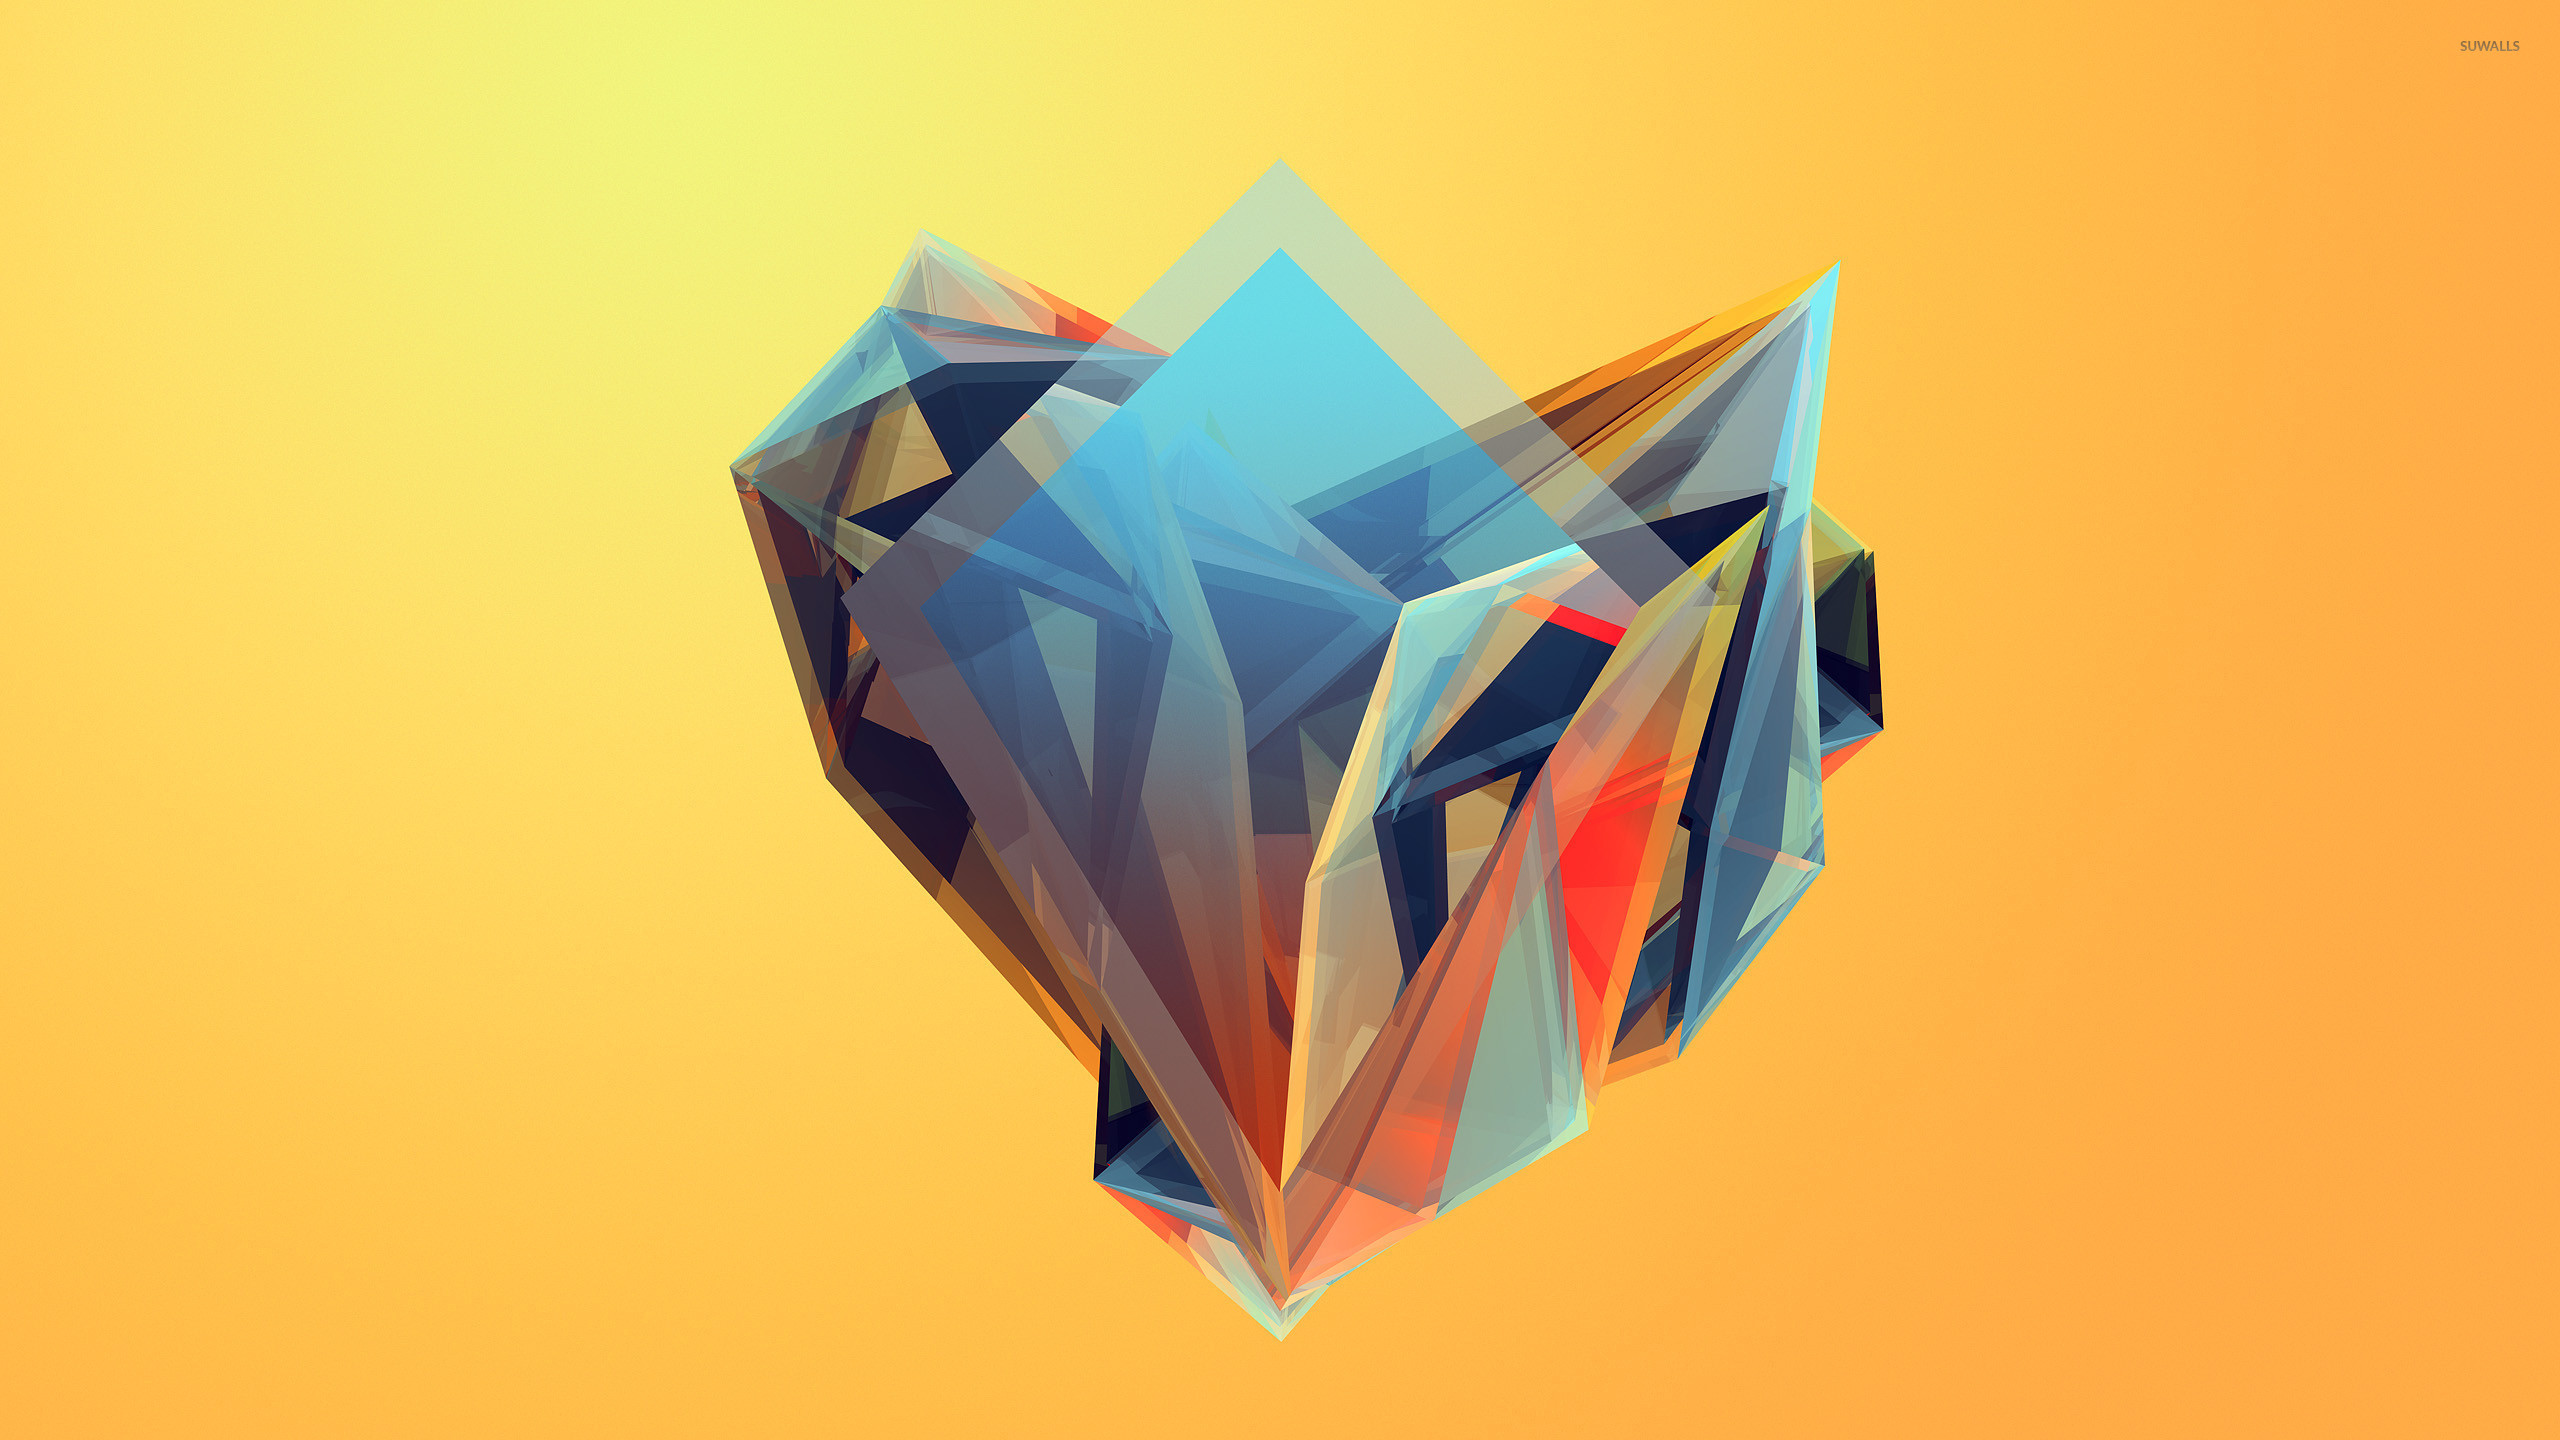 3d Hd Vaporwave Wallpaper Colorful Shapes 7 Wallpaper Abstract Wallpapers 41118